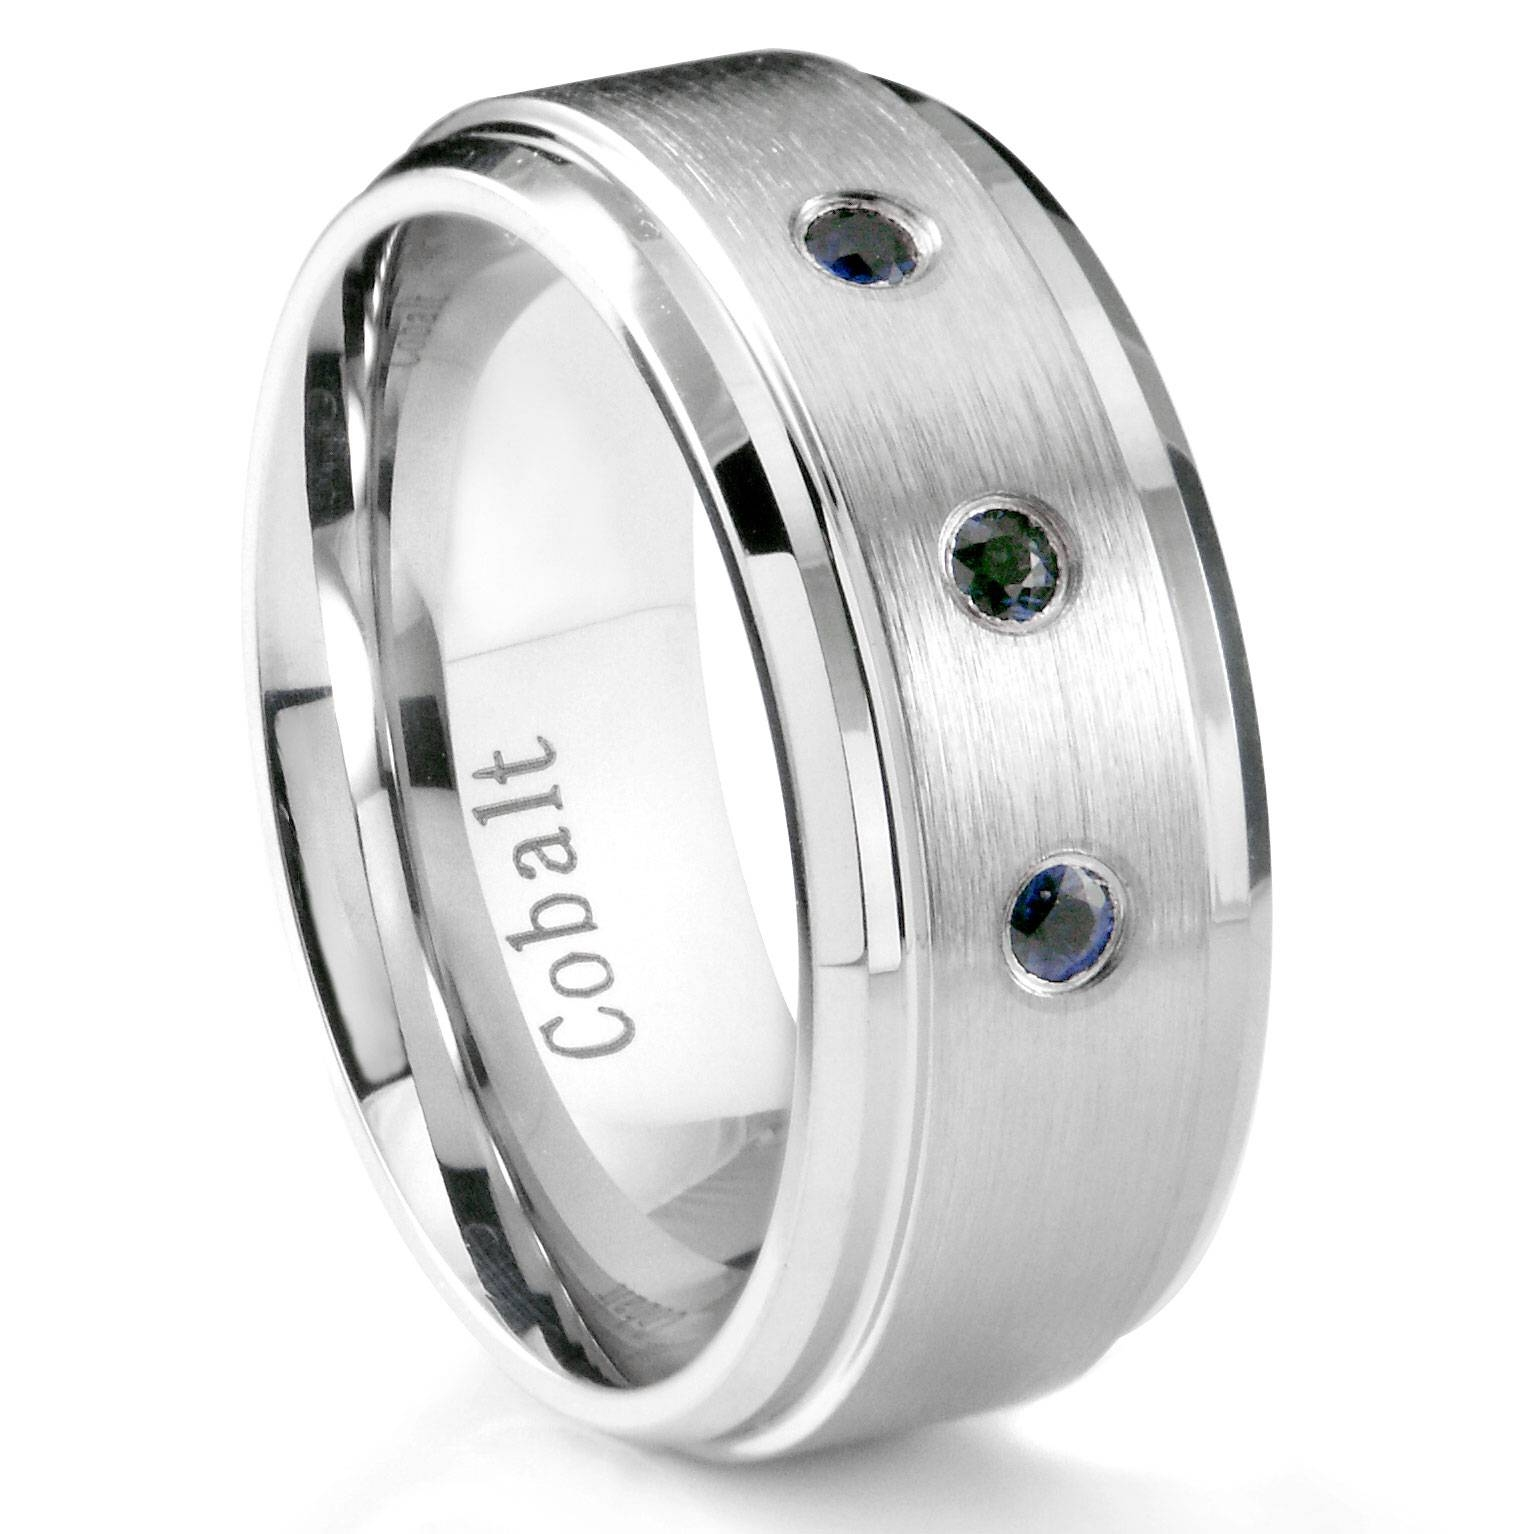 Cobalt Chrome 8Mm 3 Blue Sapphire Wedding Band Ring W/ Stepped Edges In Mens Blue Sapphire Wedding Bands (View 6 of 15)